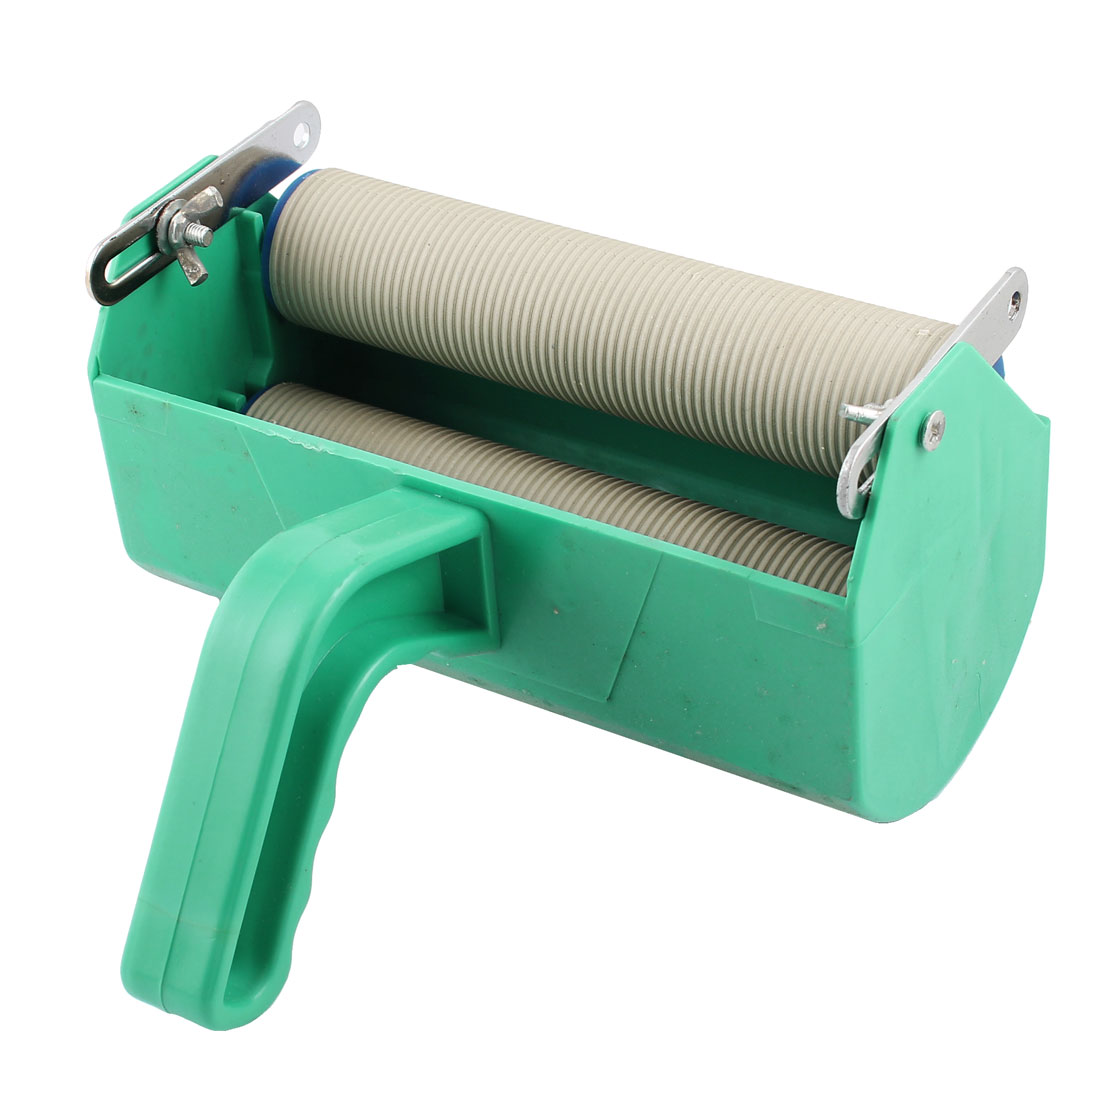 "Home Single Color Decoration DIY Wall Painting Machine for 7"" Roller Brush"